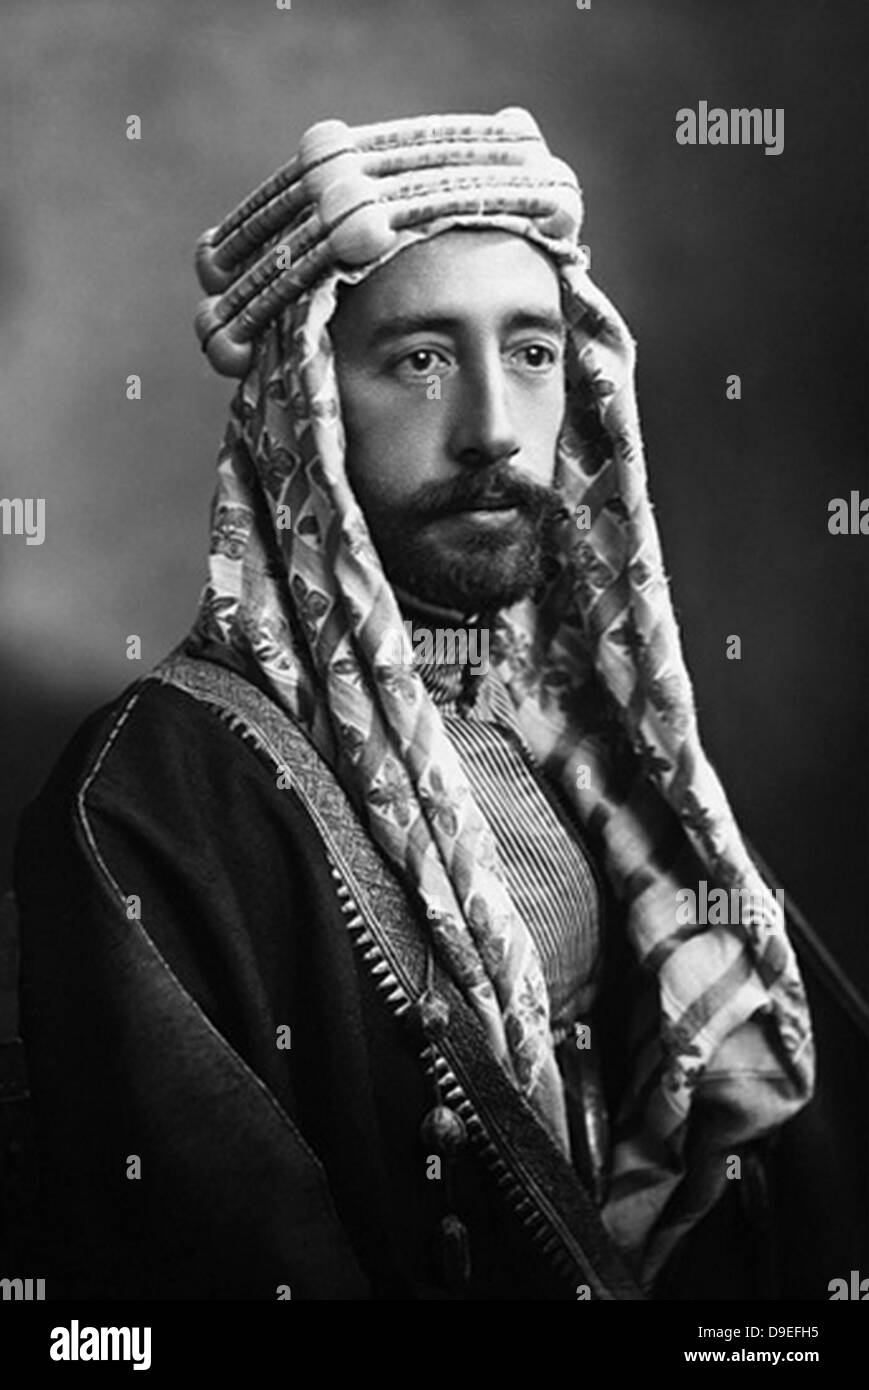 FAISAL 1 OF IRAQ (1885-1933) of the Hashmite dynasty - Stock Image